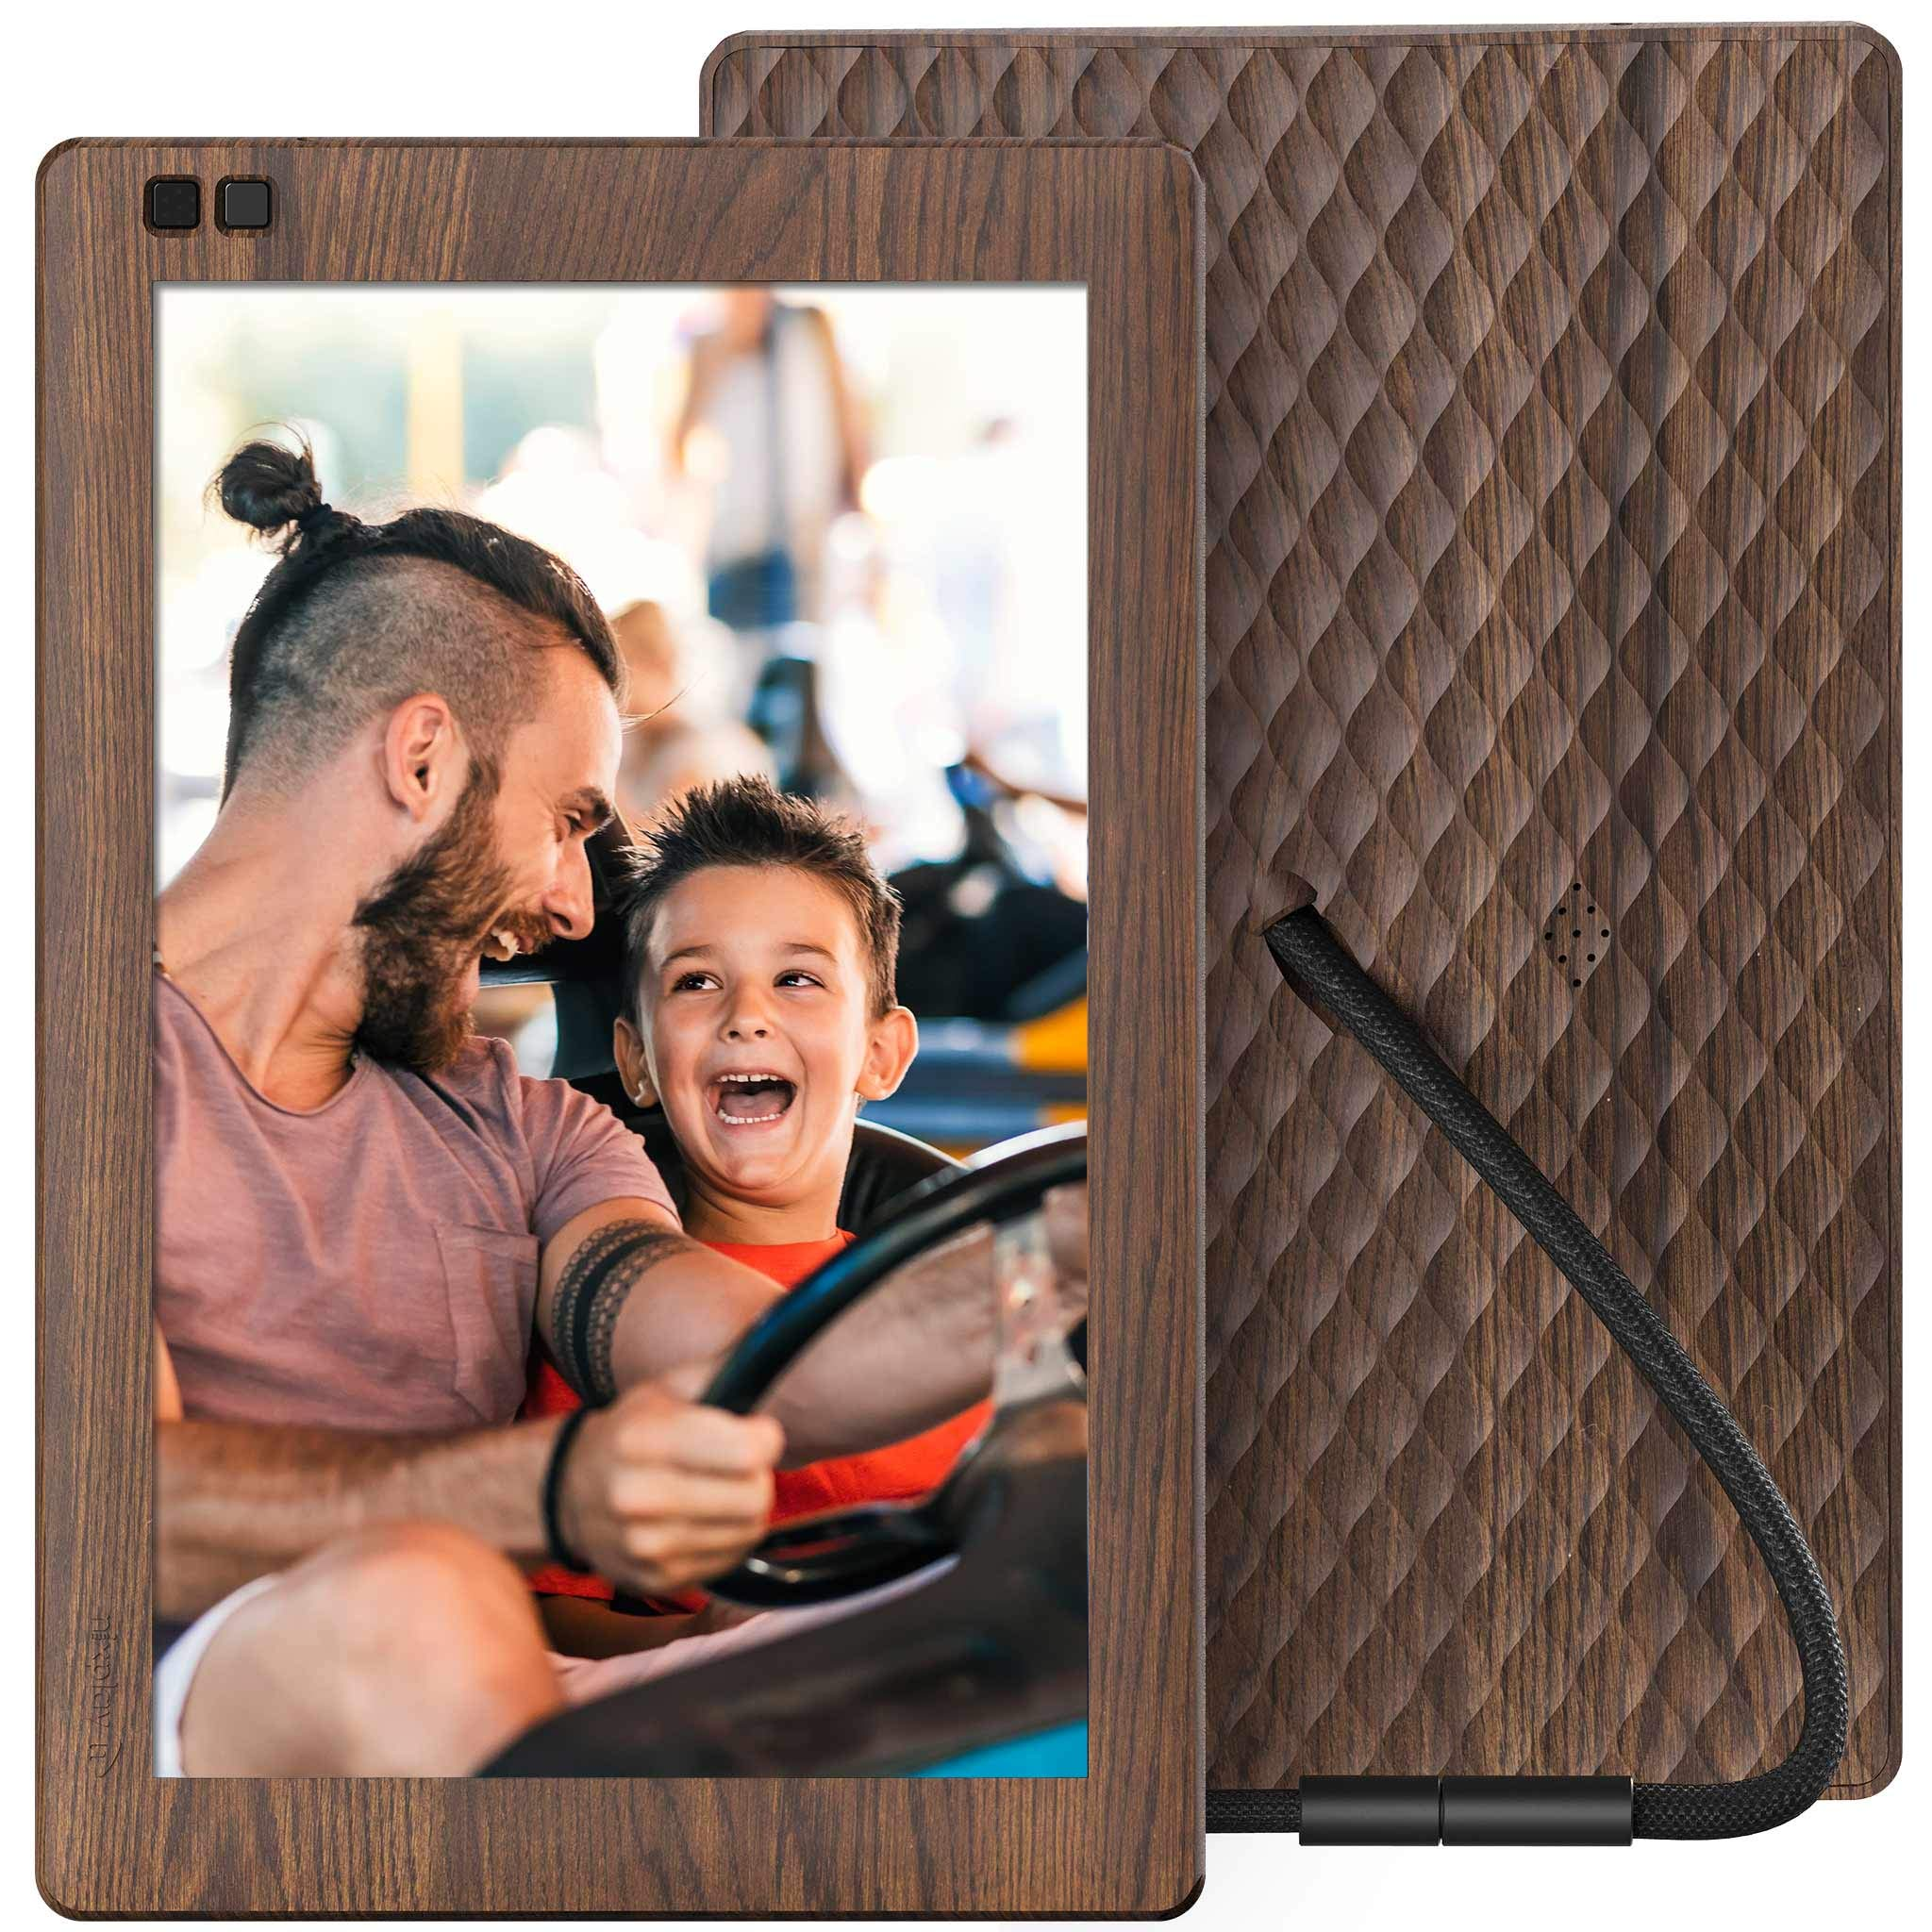 Nixplay Seed 10.1 Inch Widescreen Digital WiFi Photo Frame W10B Wood Effect - Digital Picture Frame with IPS Display and 10GB Online Storage, Display and Share Photos via Nixplay Mobile App by nixplay (Image #1)